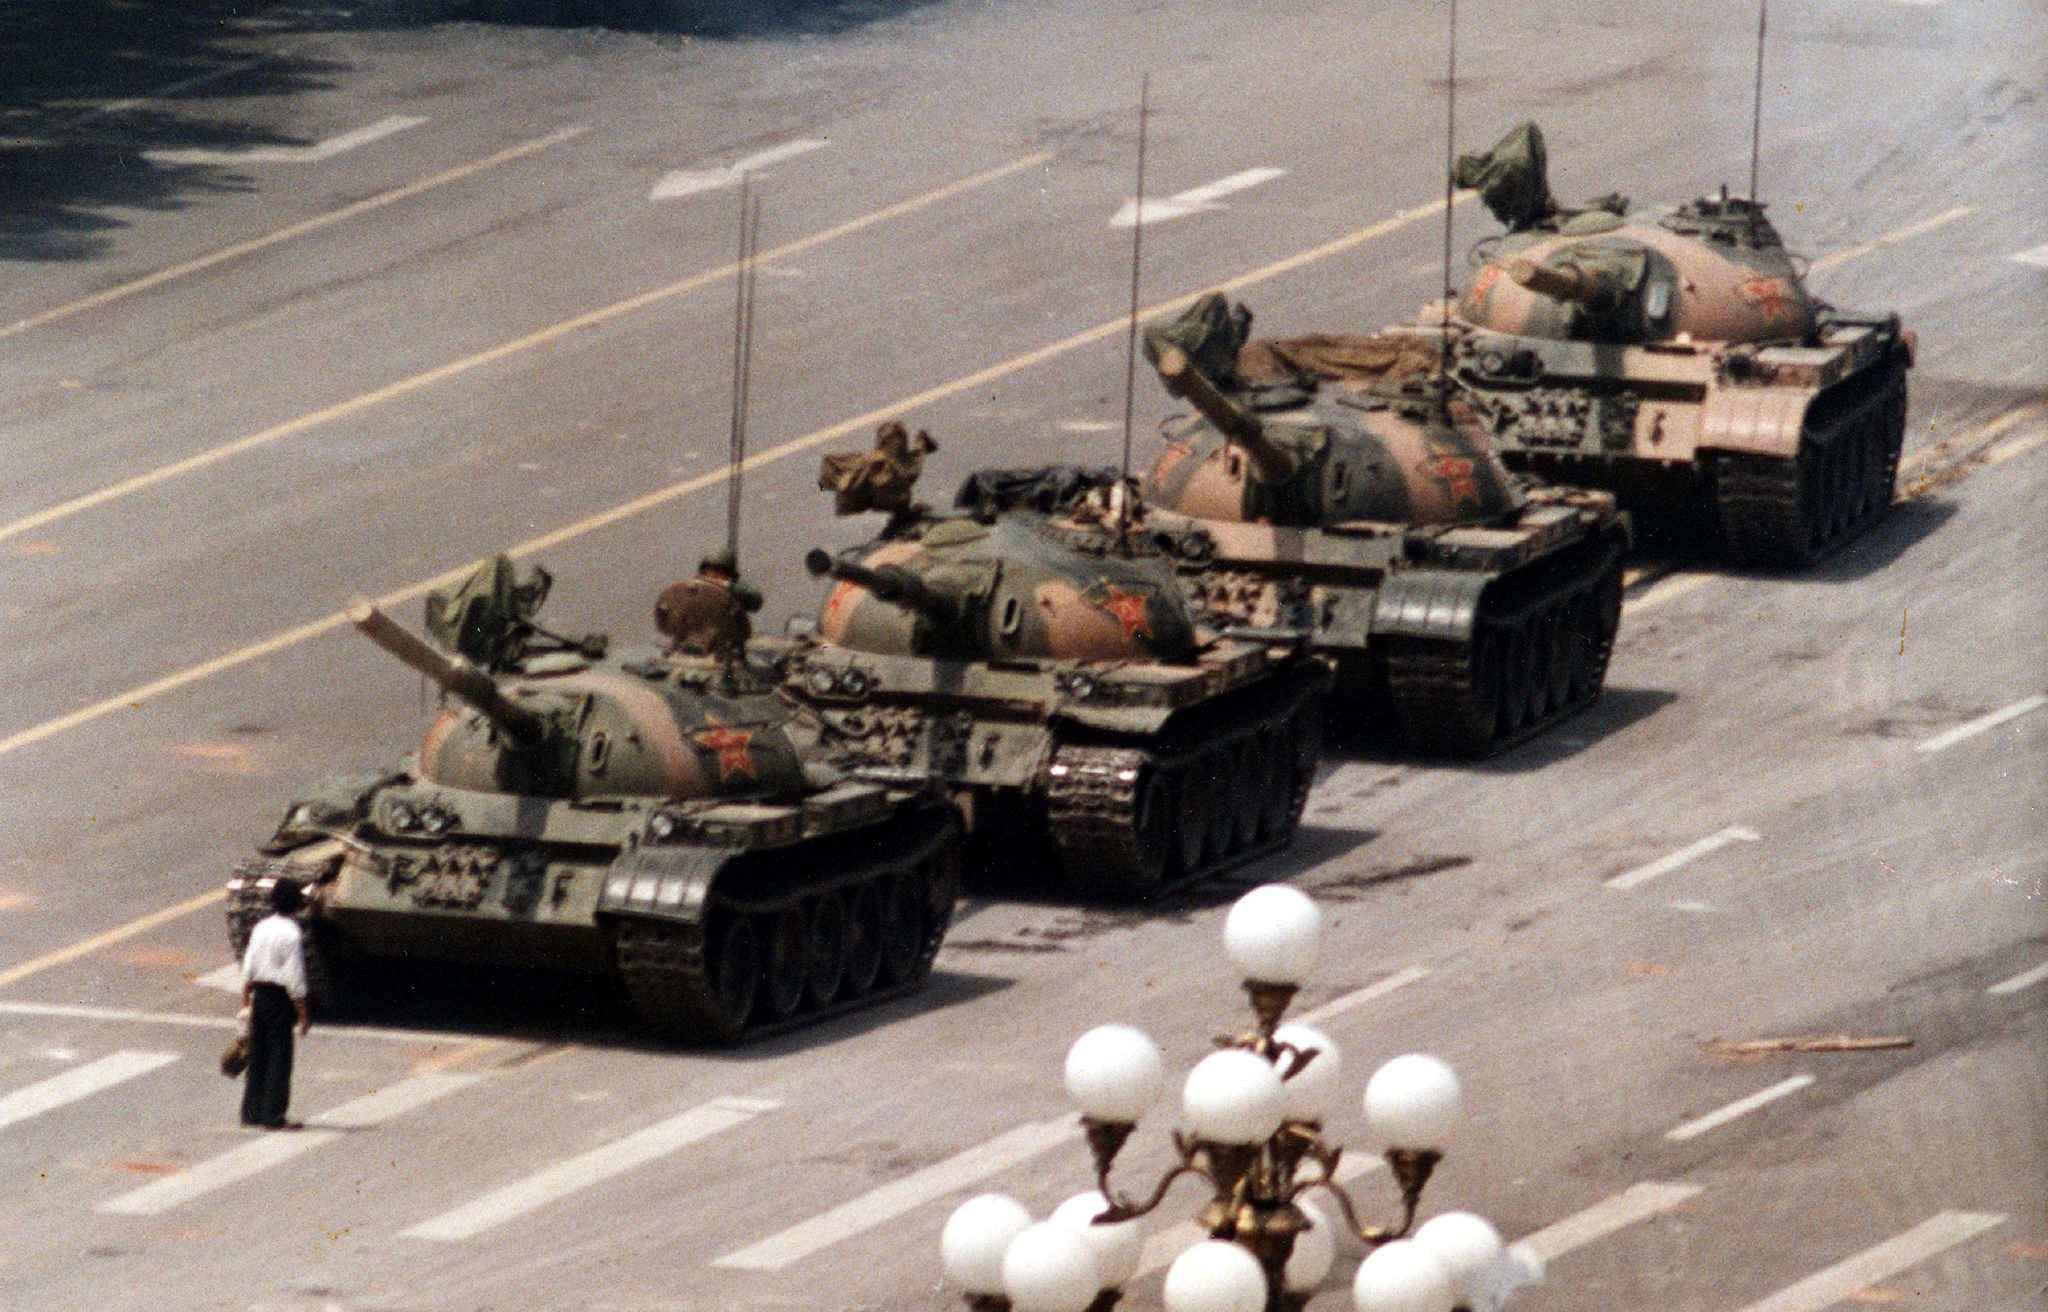 FILE - In this June 5, 1989 file photo, a Chinese protestor blocks a line of tanks heading east on Beijing's Cangan Blvd. June 5, 1989 in front of the Beijing Hotel. The man, calling for an end to the violence and bloodshed against pro-democracy demonstrators, was pulled away by bystanders, and the tanks continued on their way. Thursday June 4, 2009 marks the 20th anniversary of the Chinese military assault on demonstrators on the night of June 3-4, 1989 in Tiananmen Square.